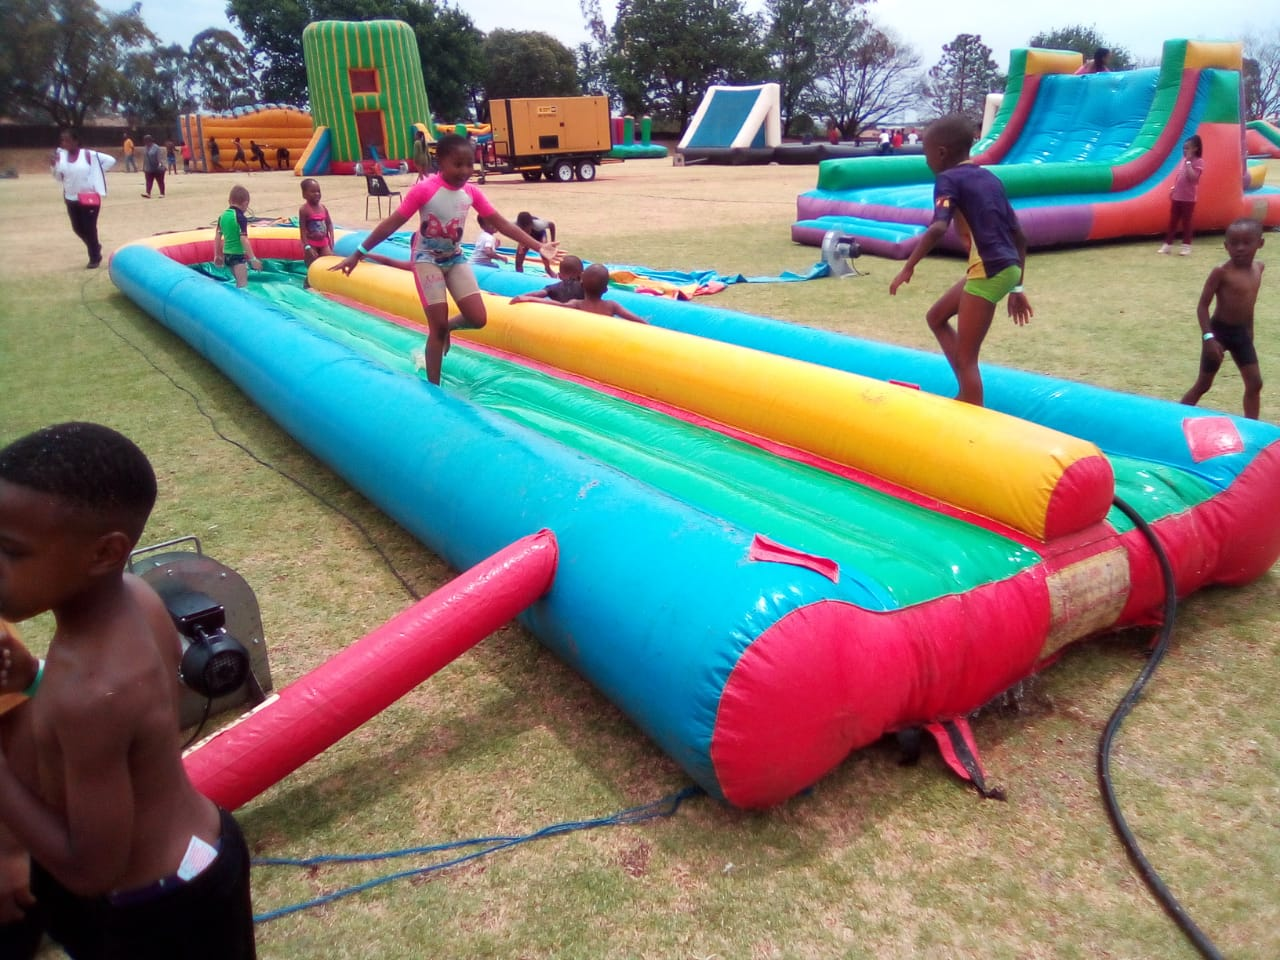 School teambuilding spanbou teambuild inflatable obstacle course